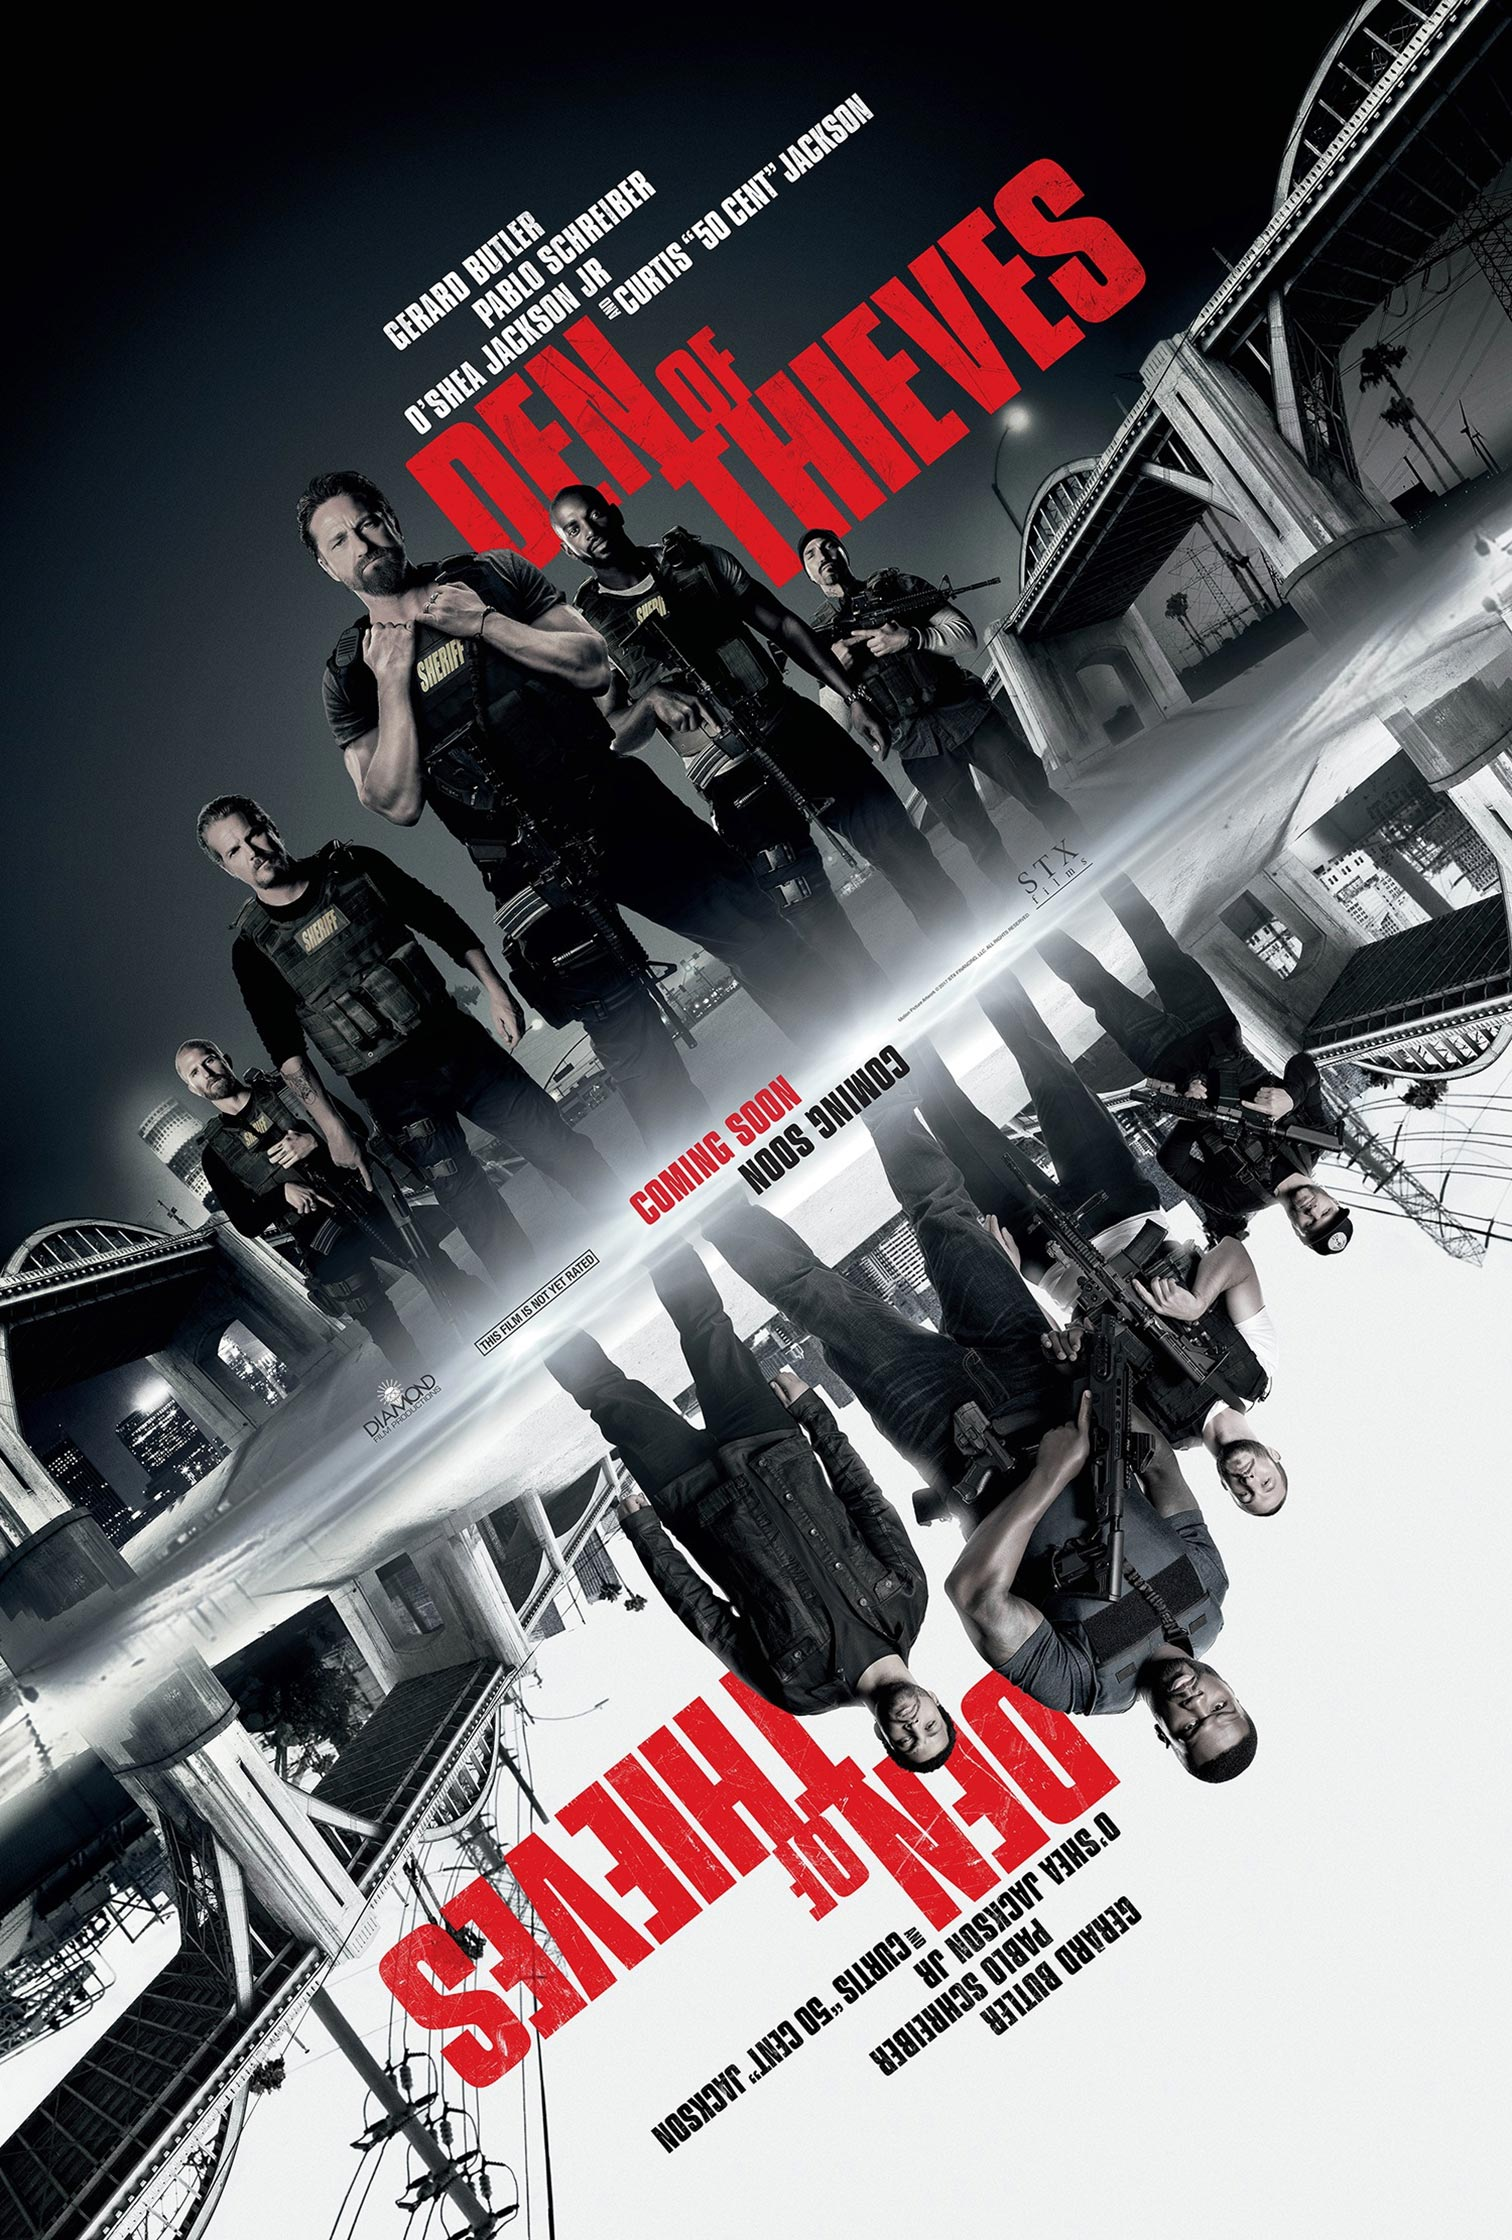 Den of Thieves Poster #2